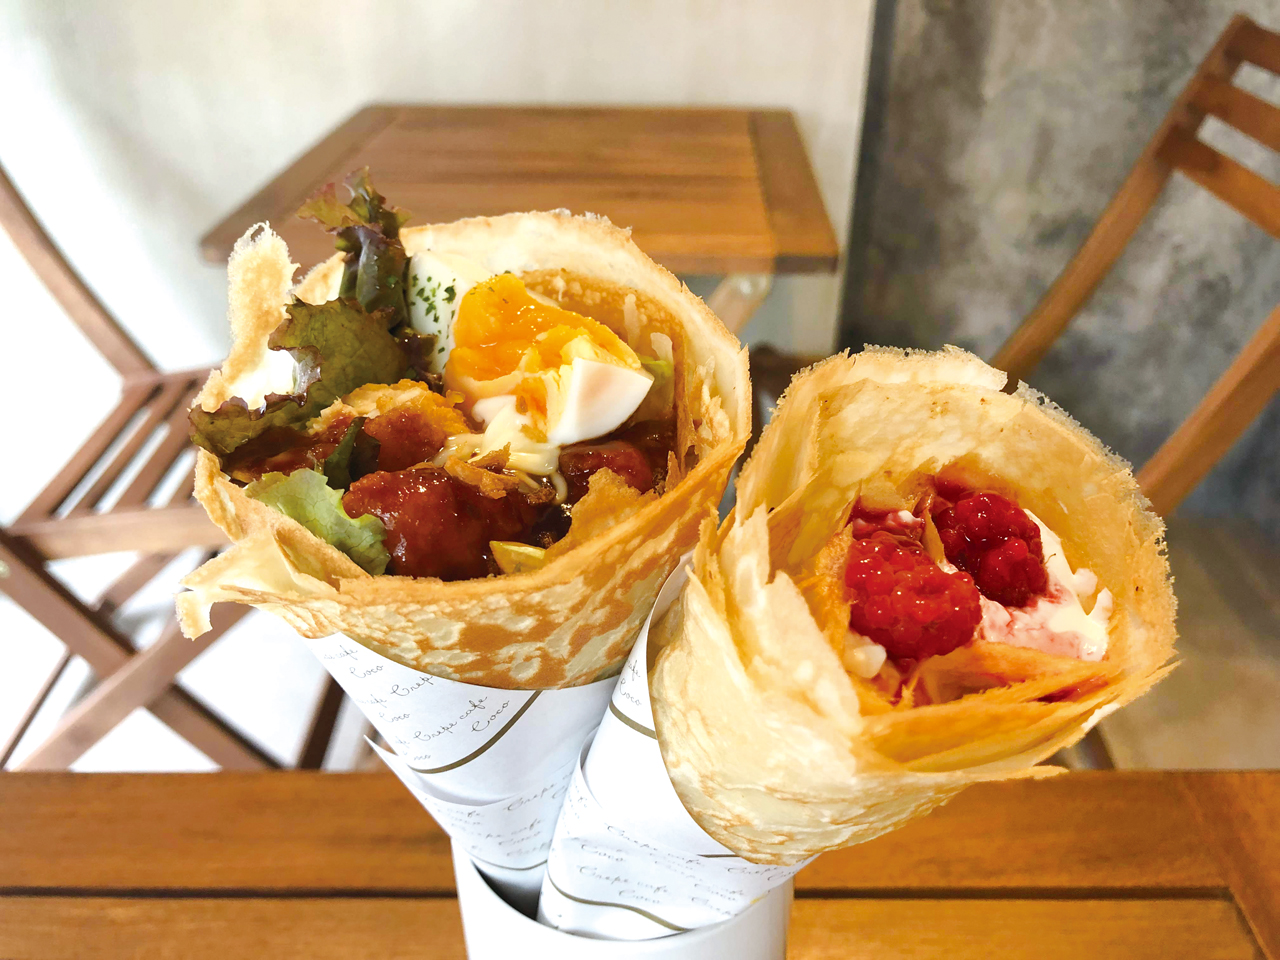 Crepe cafe Coco